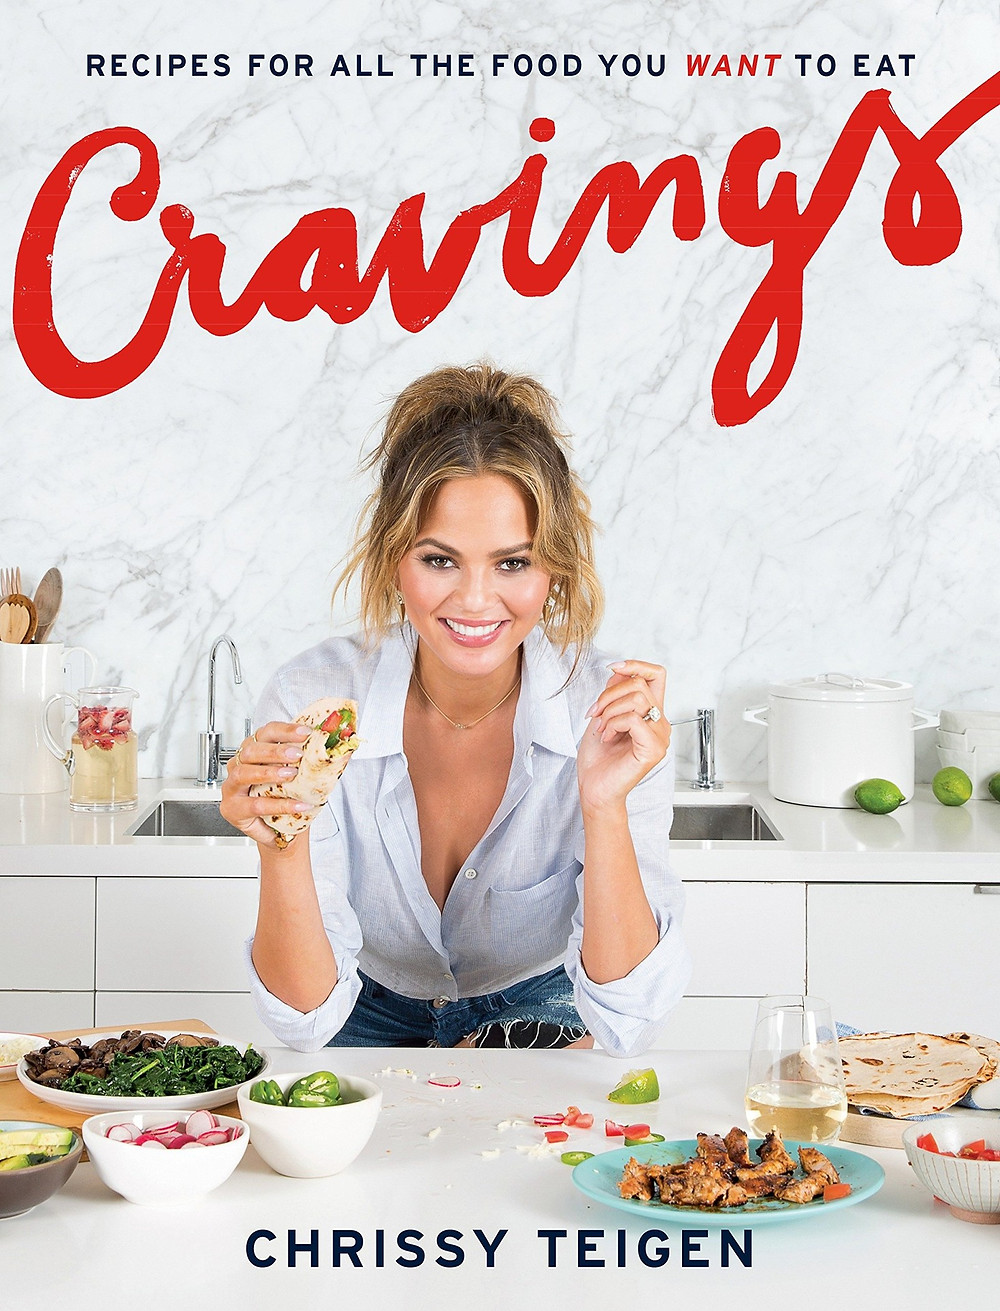 Cravings: Recipes for All the Food You Want to Eat: A Cookbook Adeena Sussman (Author)  Chrissy Teigen (Author) food, marble shirt, red lettering thebookslut book reviews the book slut